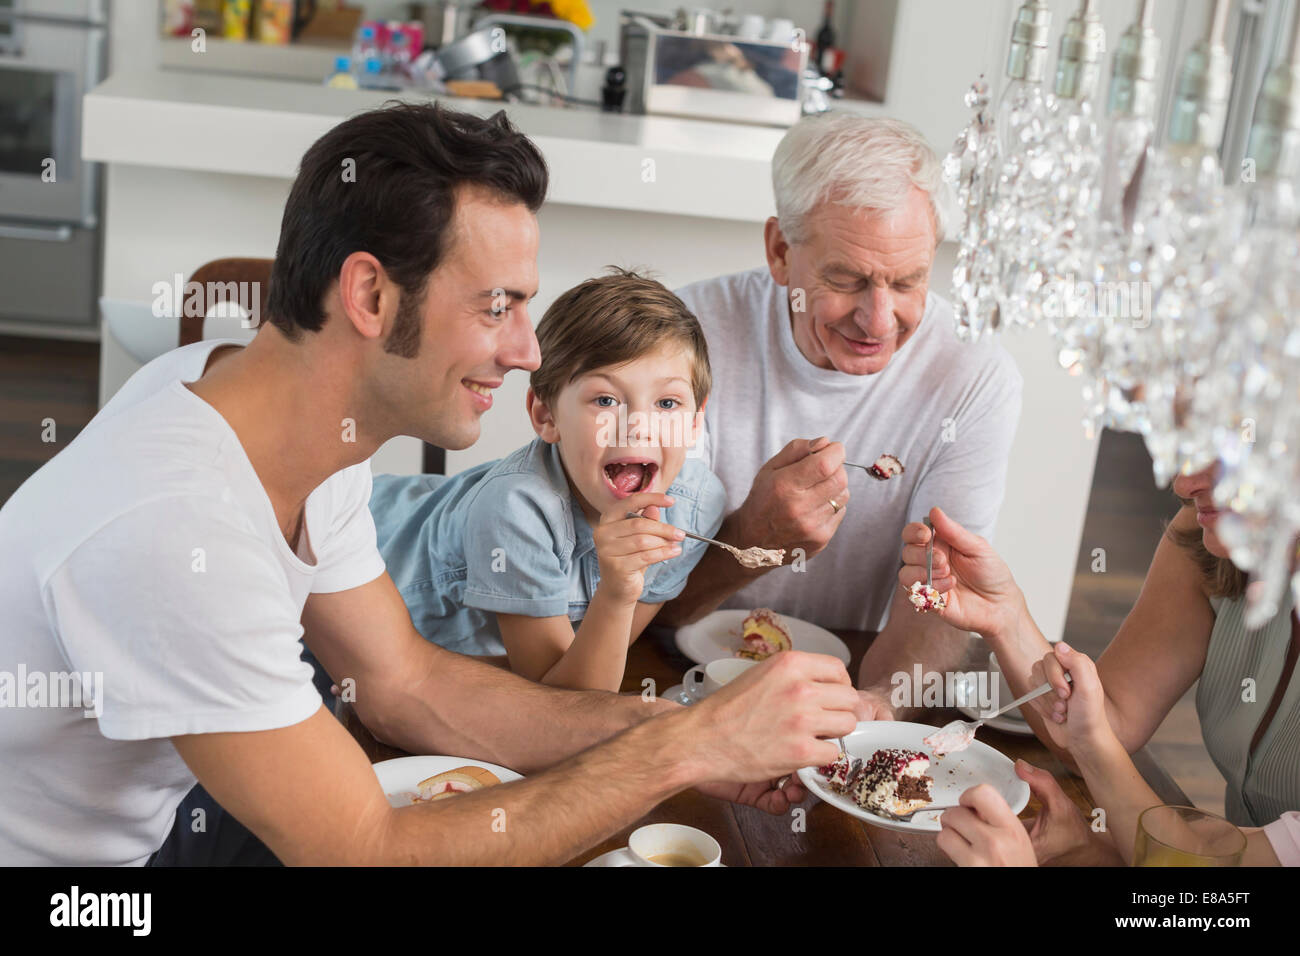 Extended family at table eating cake - Stock Image